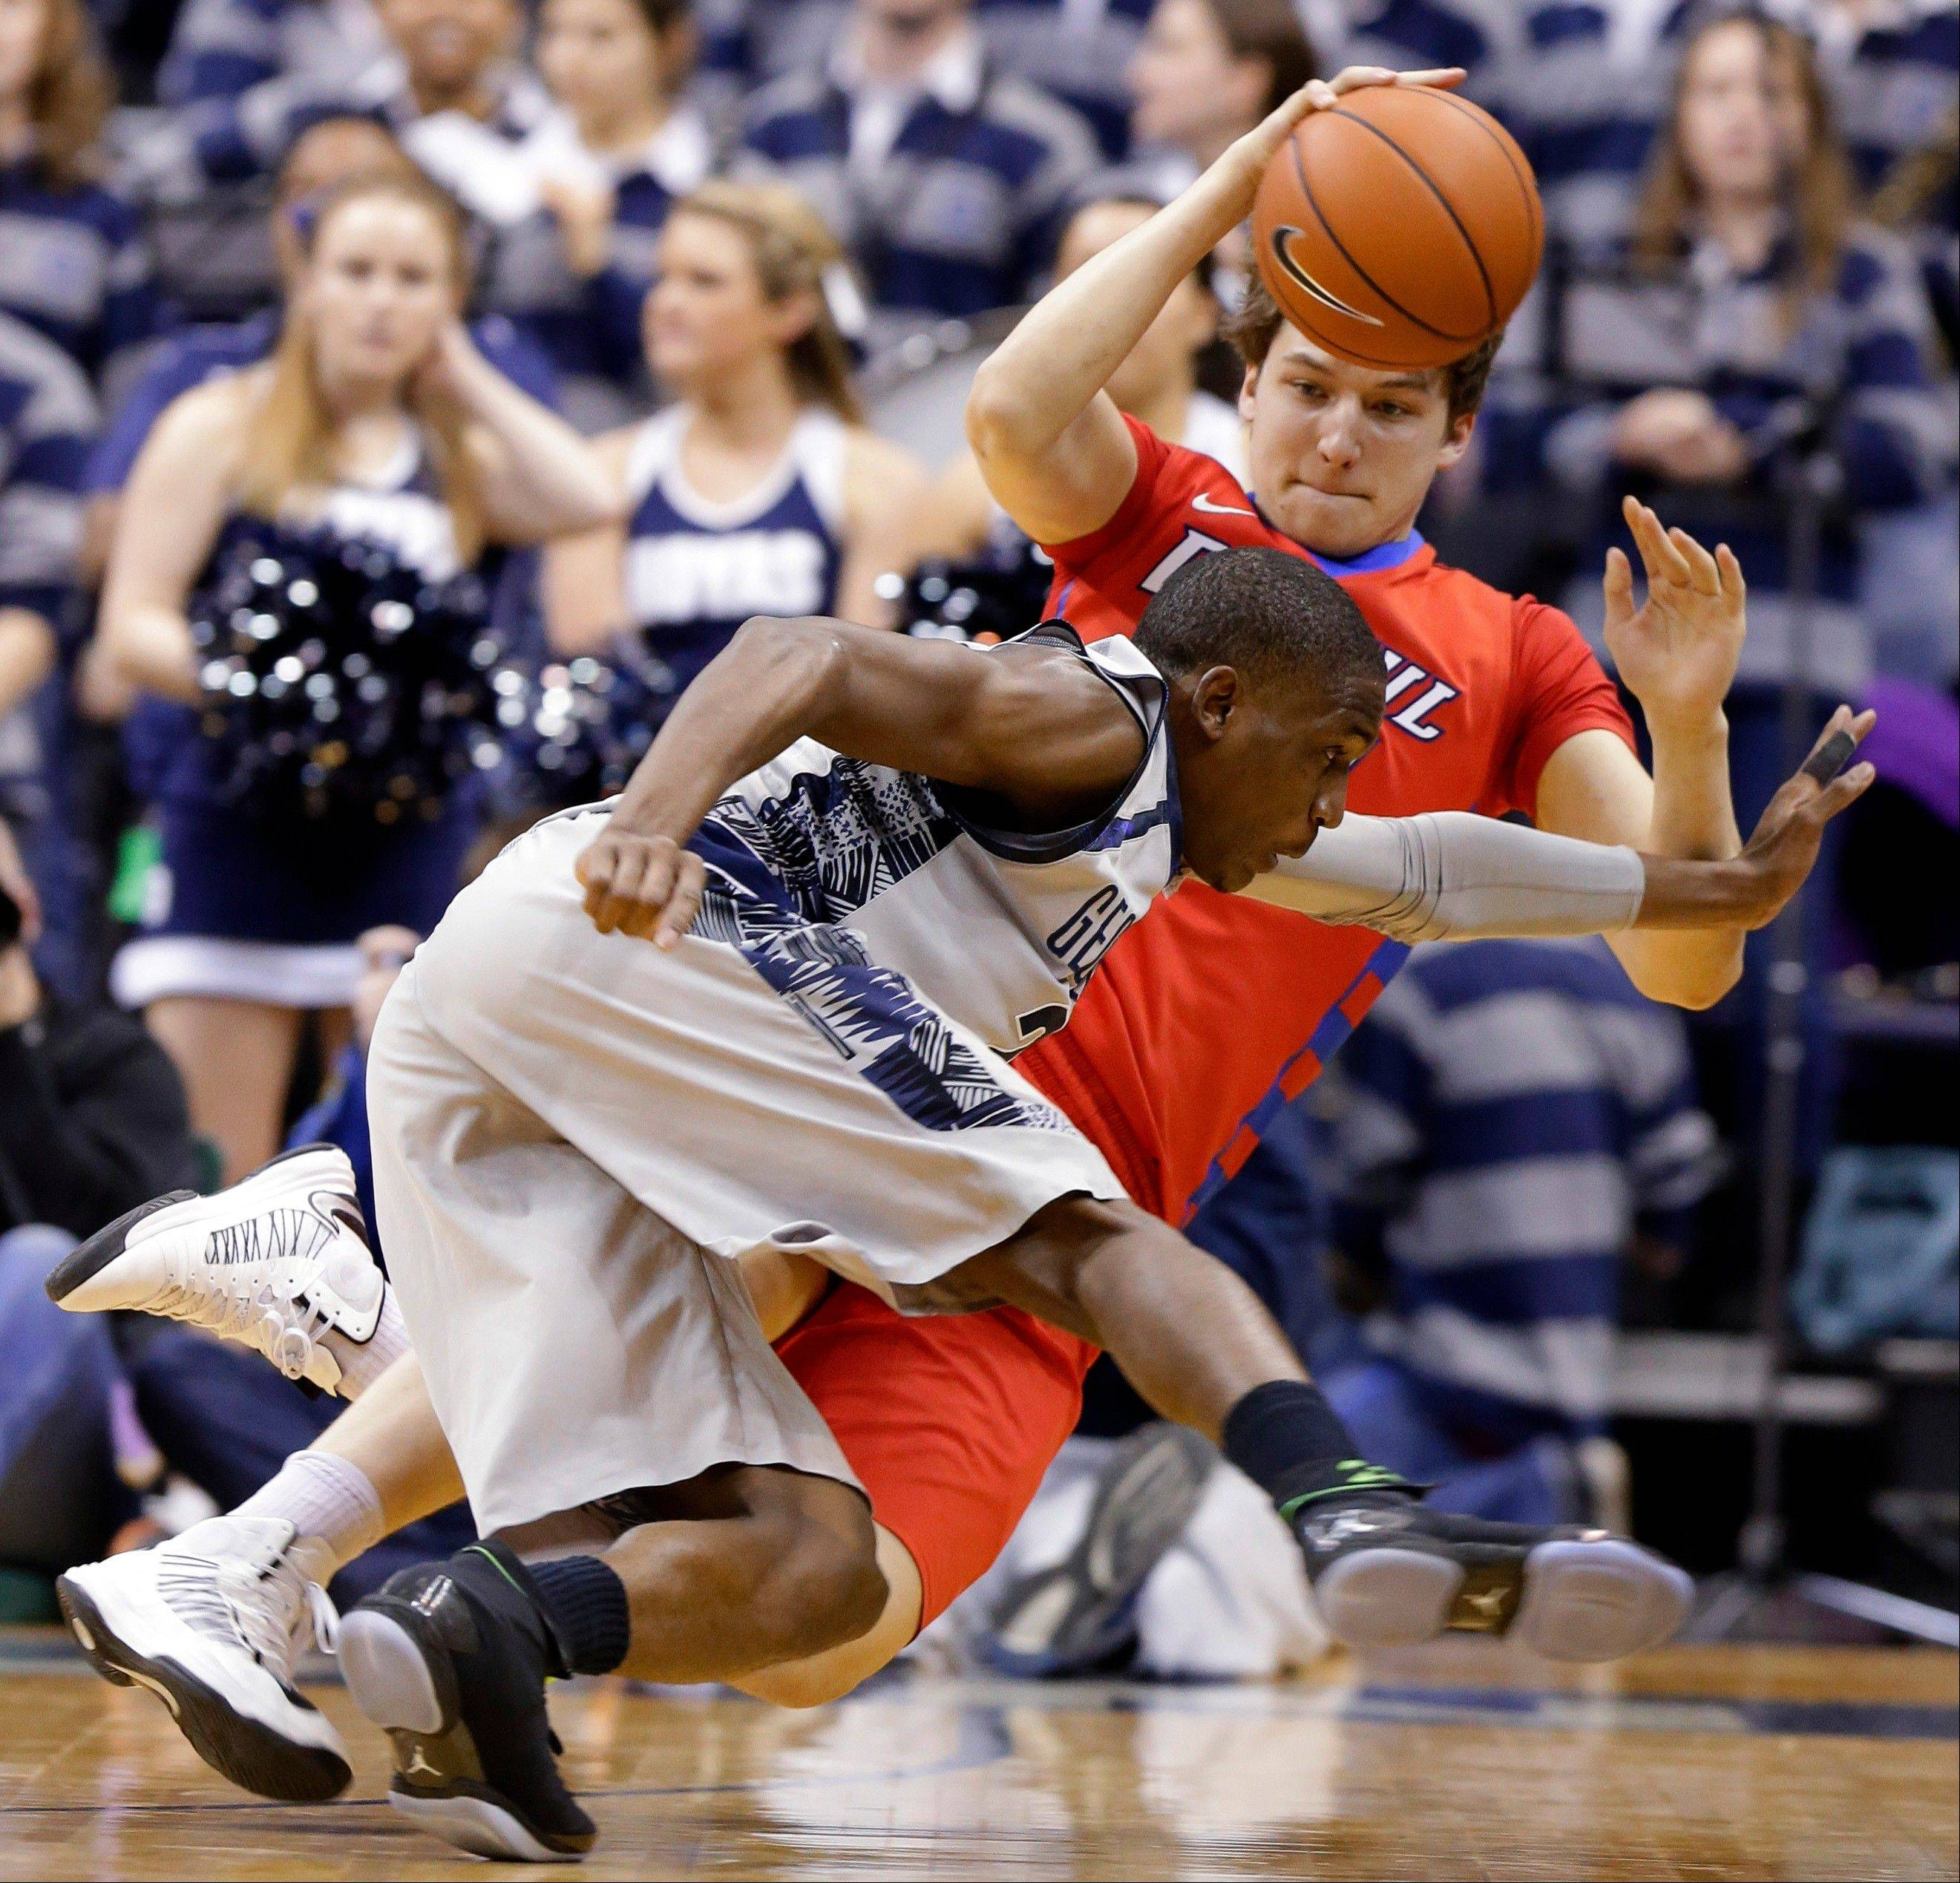 Georgetown forward Aaron Bowen, front, and DePaul forward Peter Ryckbosch scramble for a loose ball during the second half of an NCAA college basketball game, Wednesday, Feb. 20, 2013, in Washington. Georgetown won 90-66. (AP Photo/Alex Brandon)